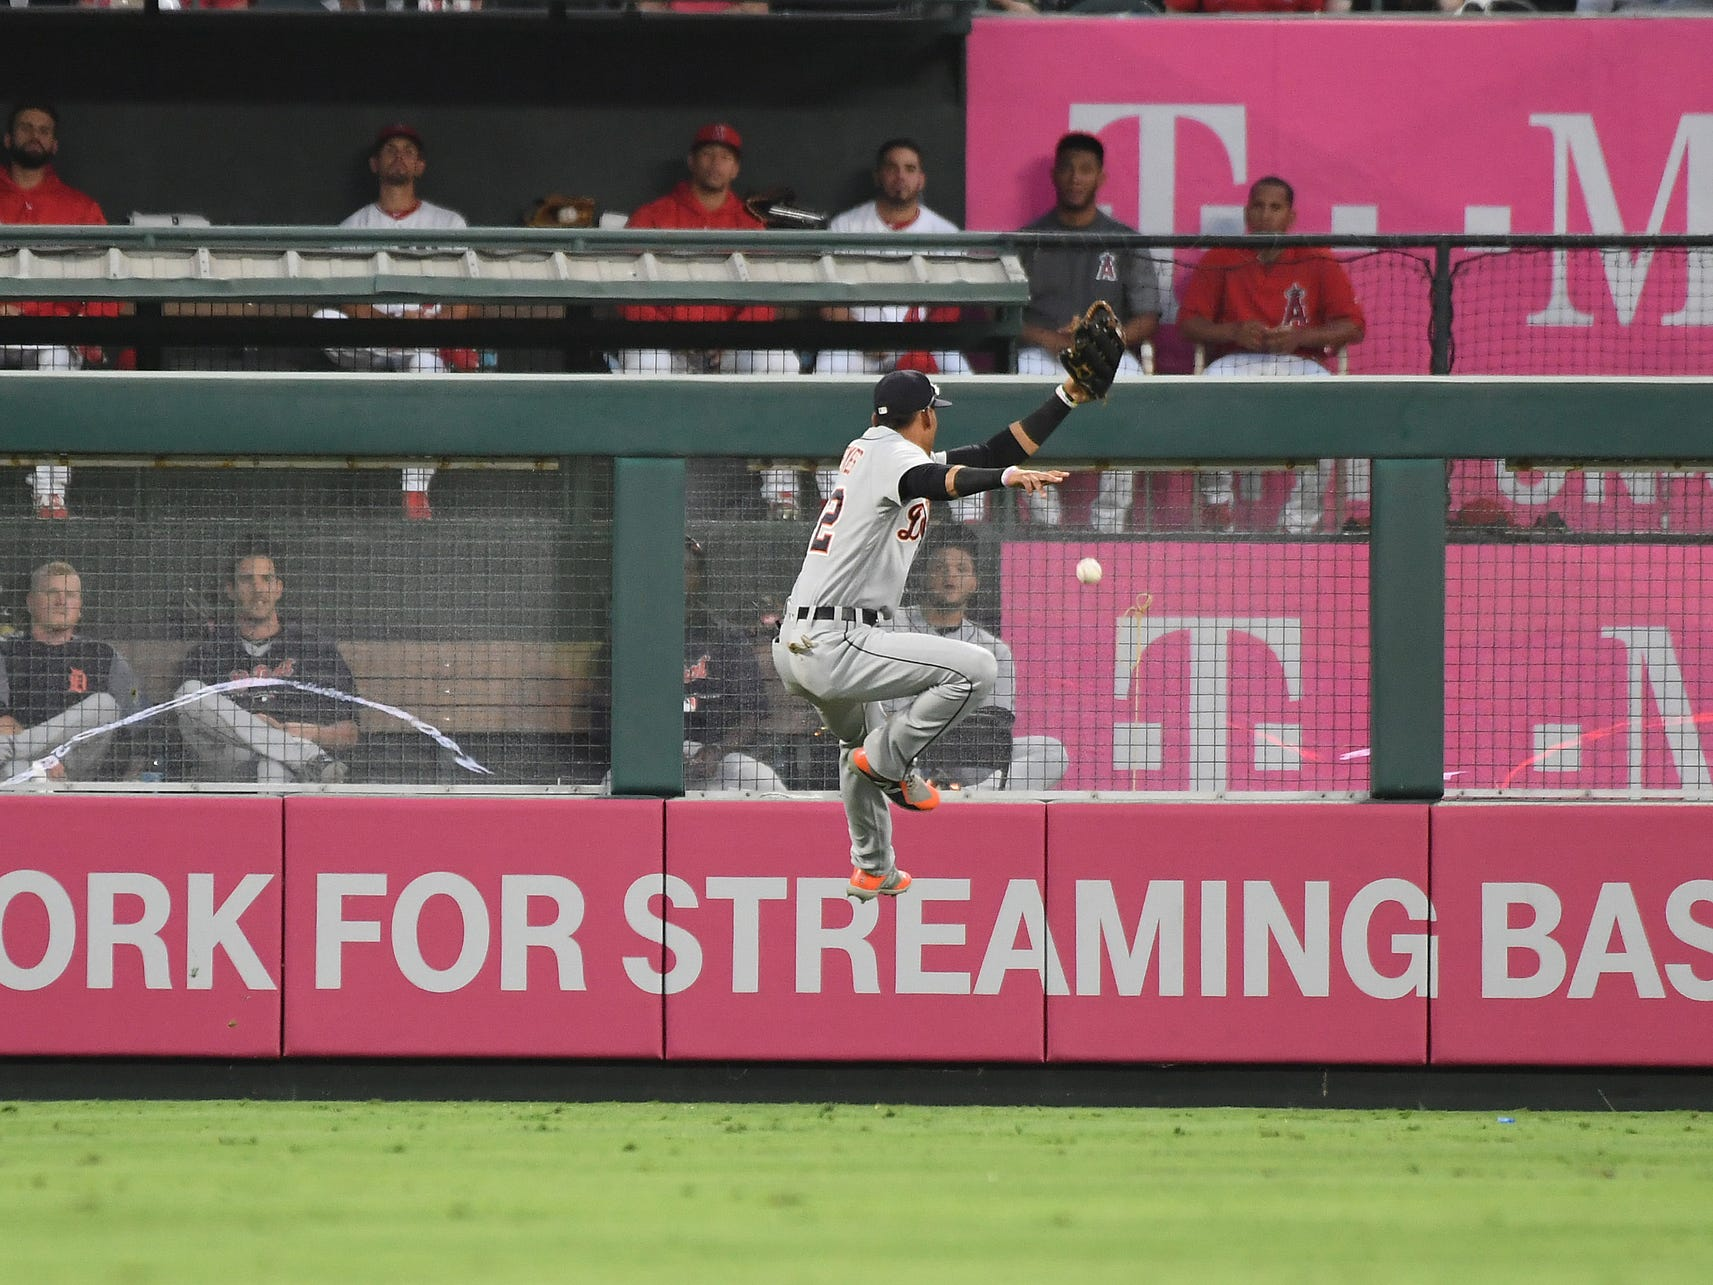 Tigers left fielder Victor Reyes (22) attempts to control the ball hit by Angels third baseman Kaleb Cowart (not pictured) for a run during the second inning on Monday, Aug. 6, 2018, in Anaheim, Calif.